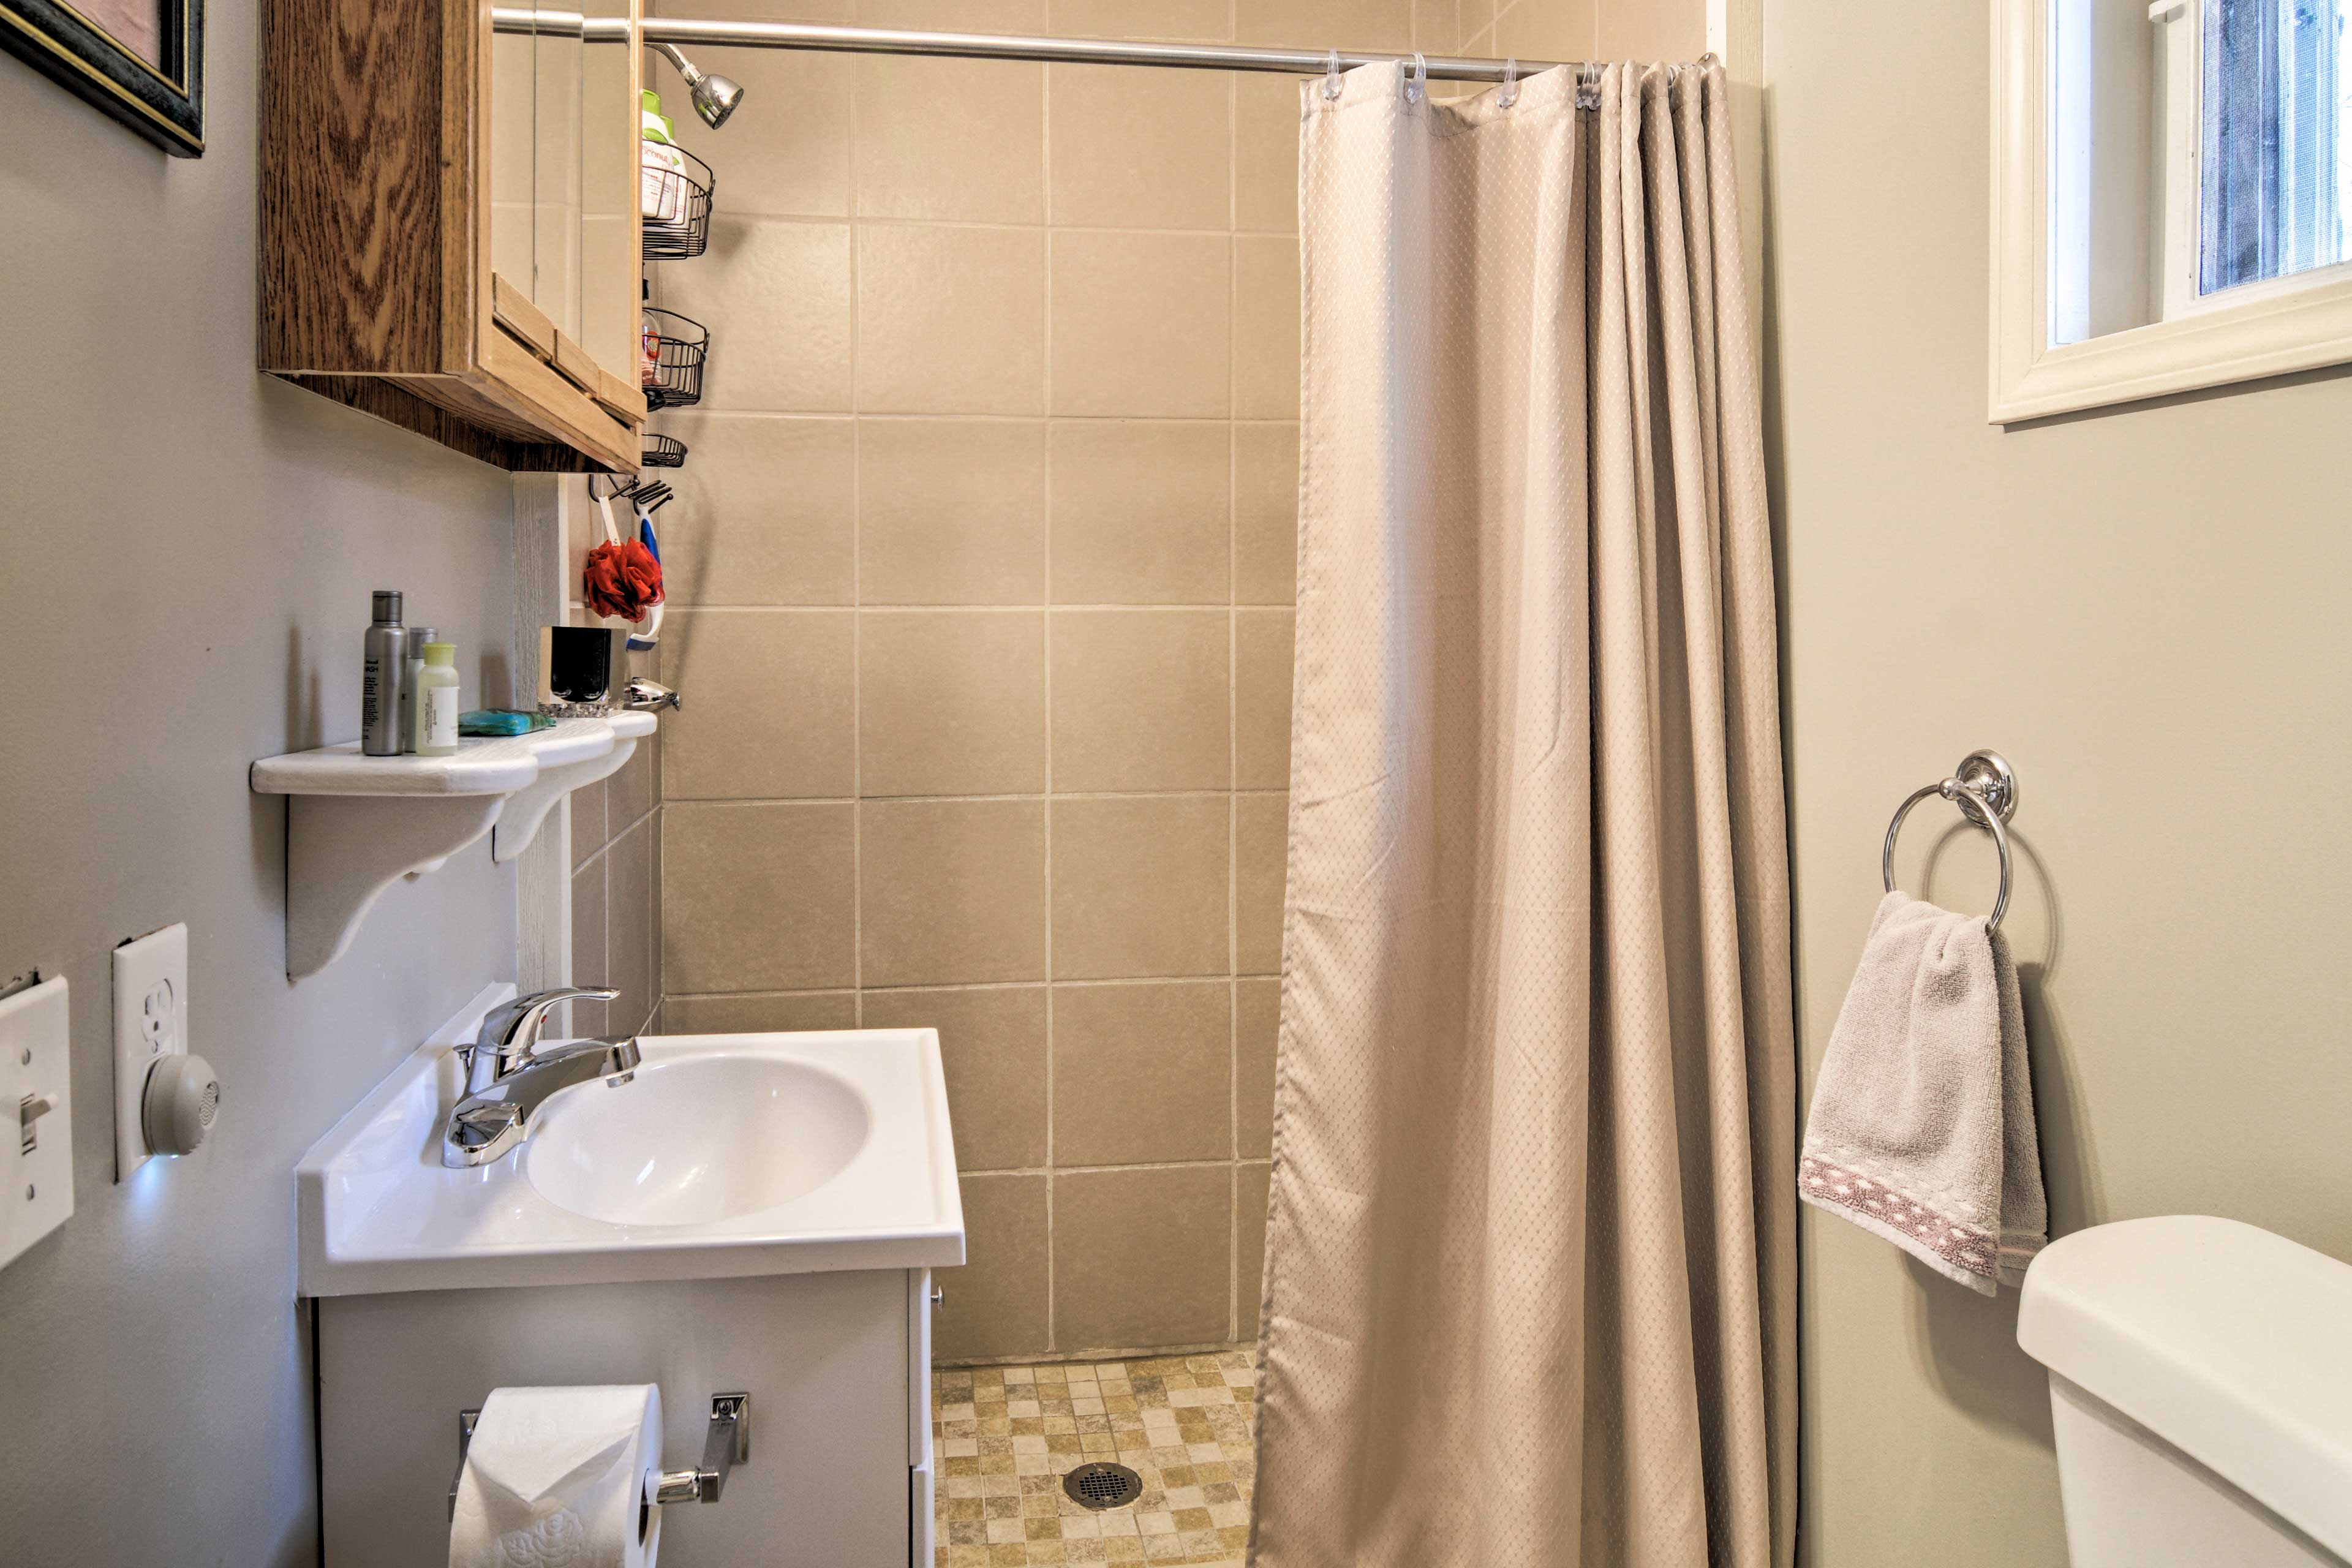 The second full bathroom features a walk-in shower.